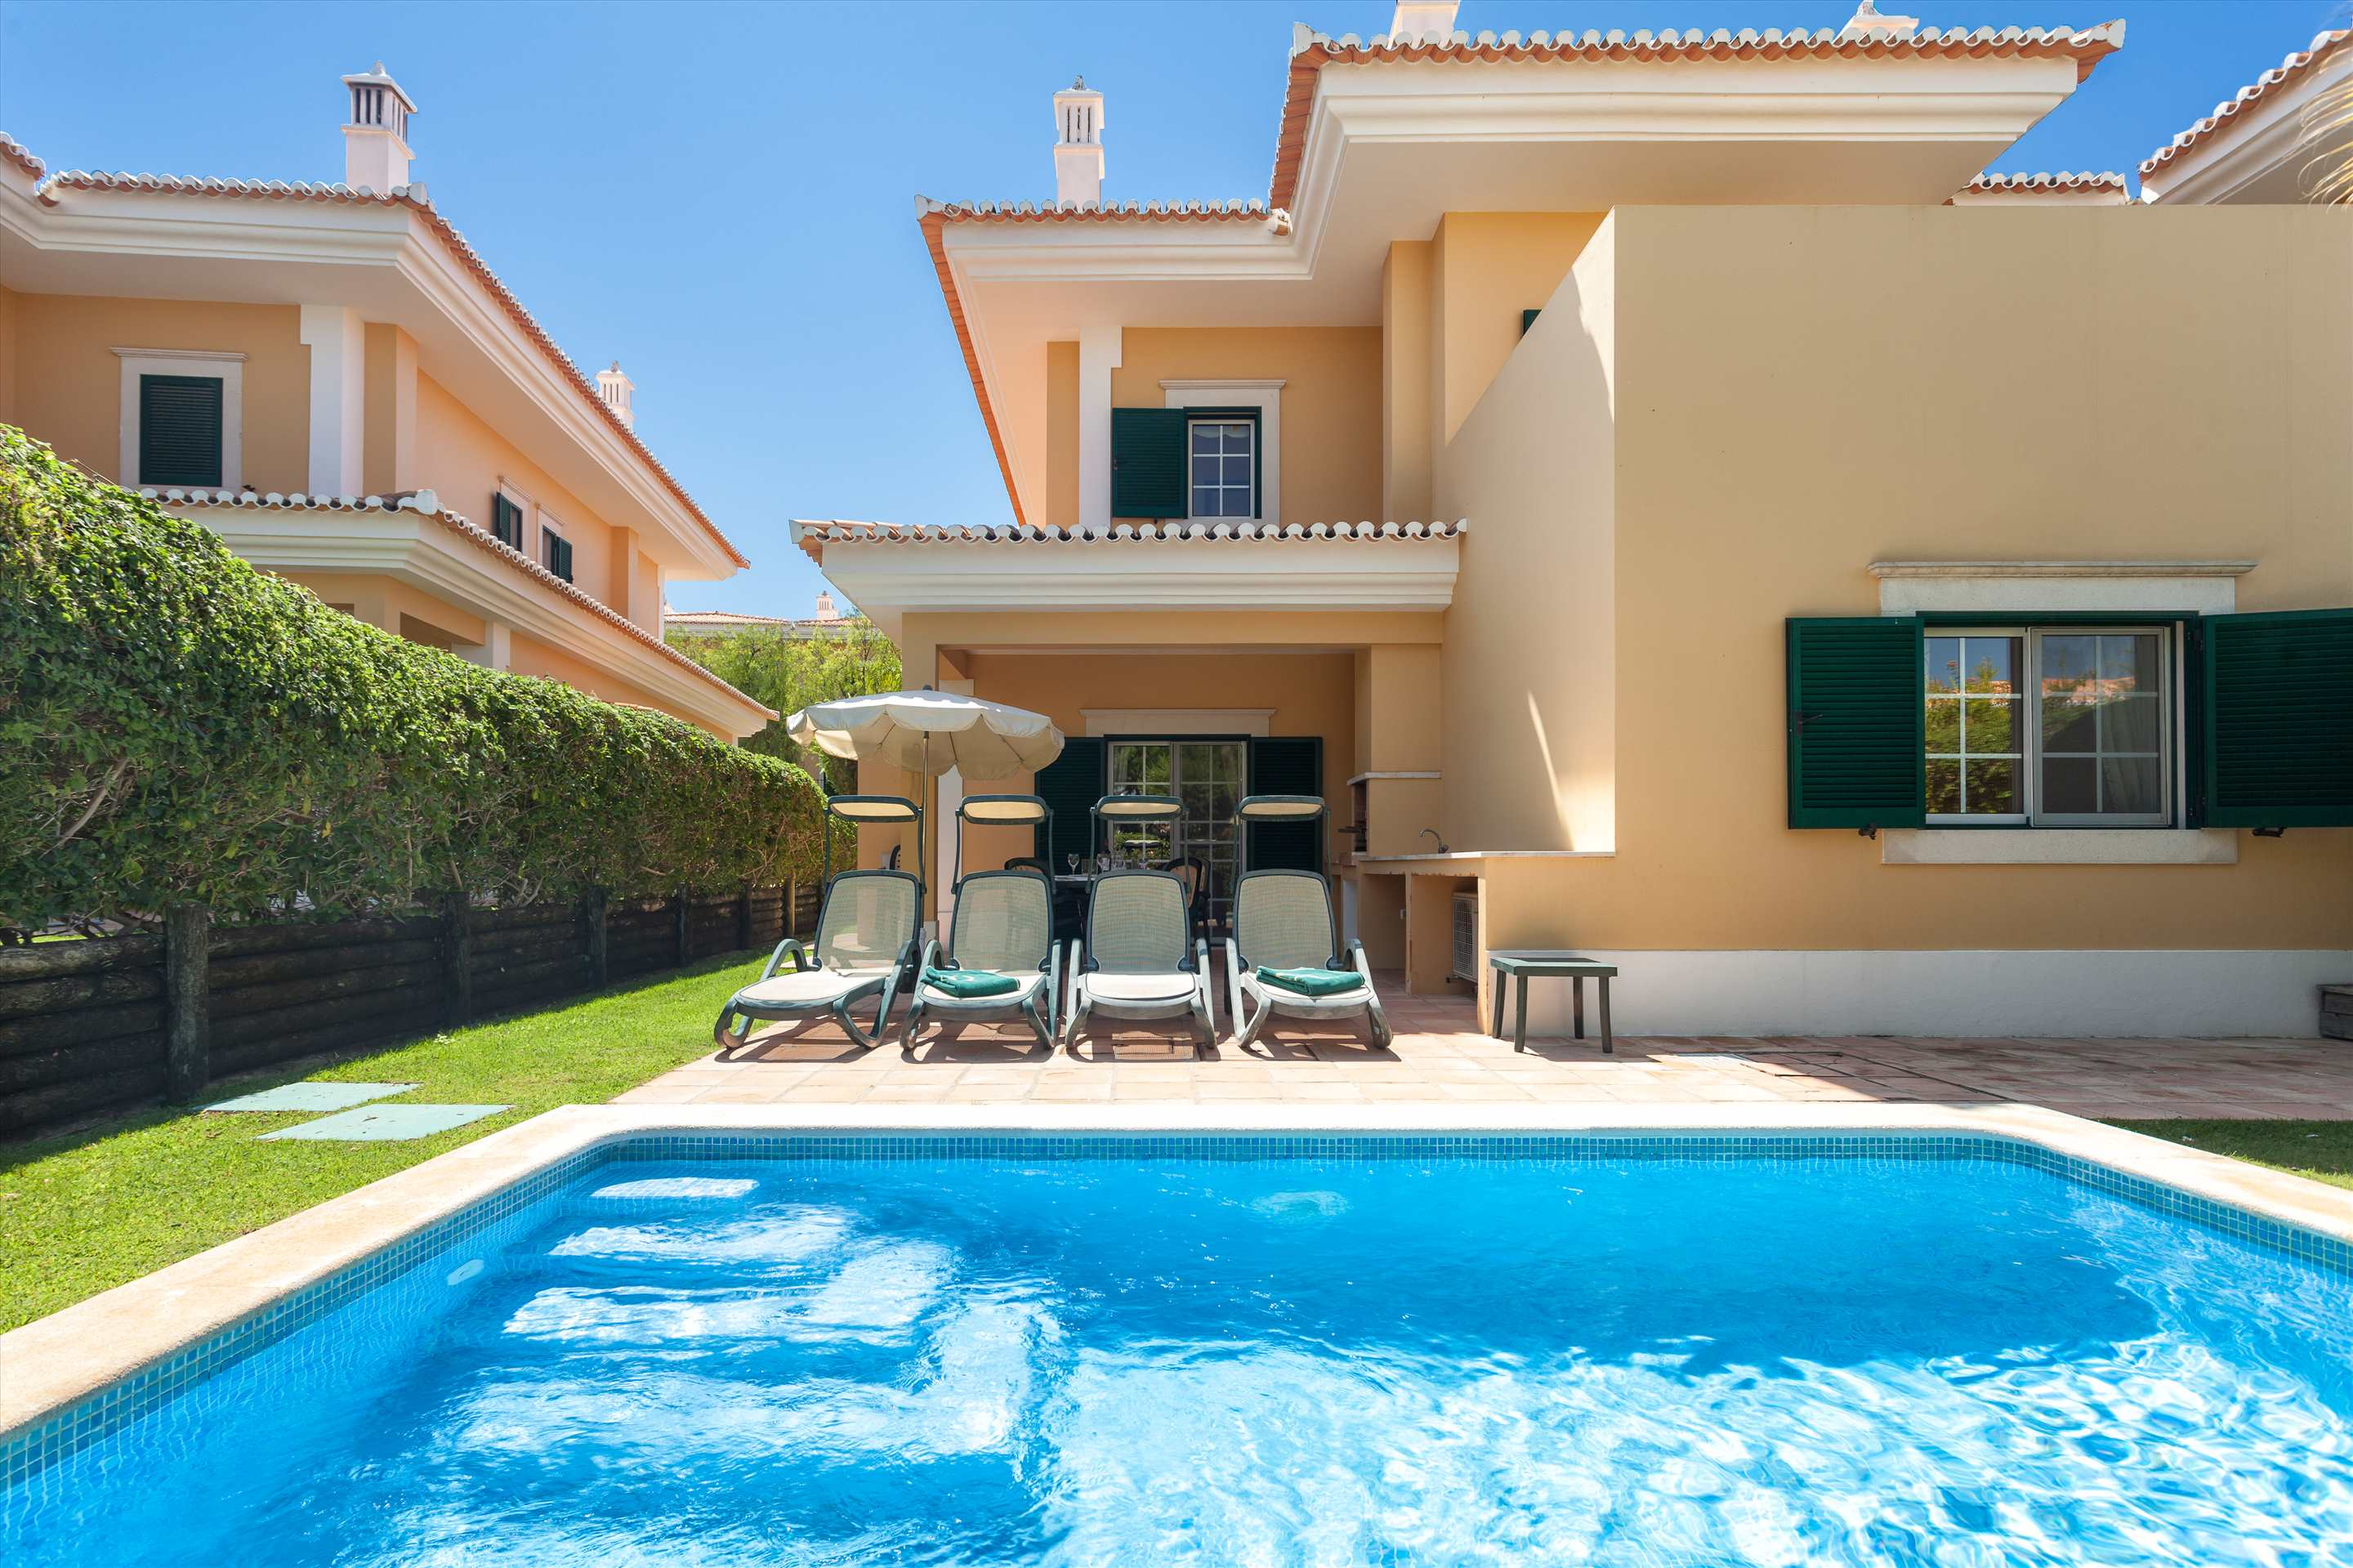 Martinhal Quinta Townhouse (3 Bedroom), 3 bedroom villa in Martinhal Quinta Resort, Algarve Photo #6